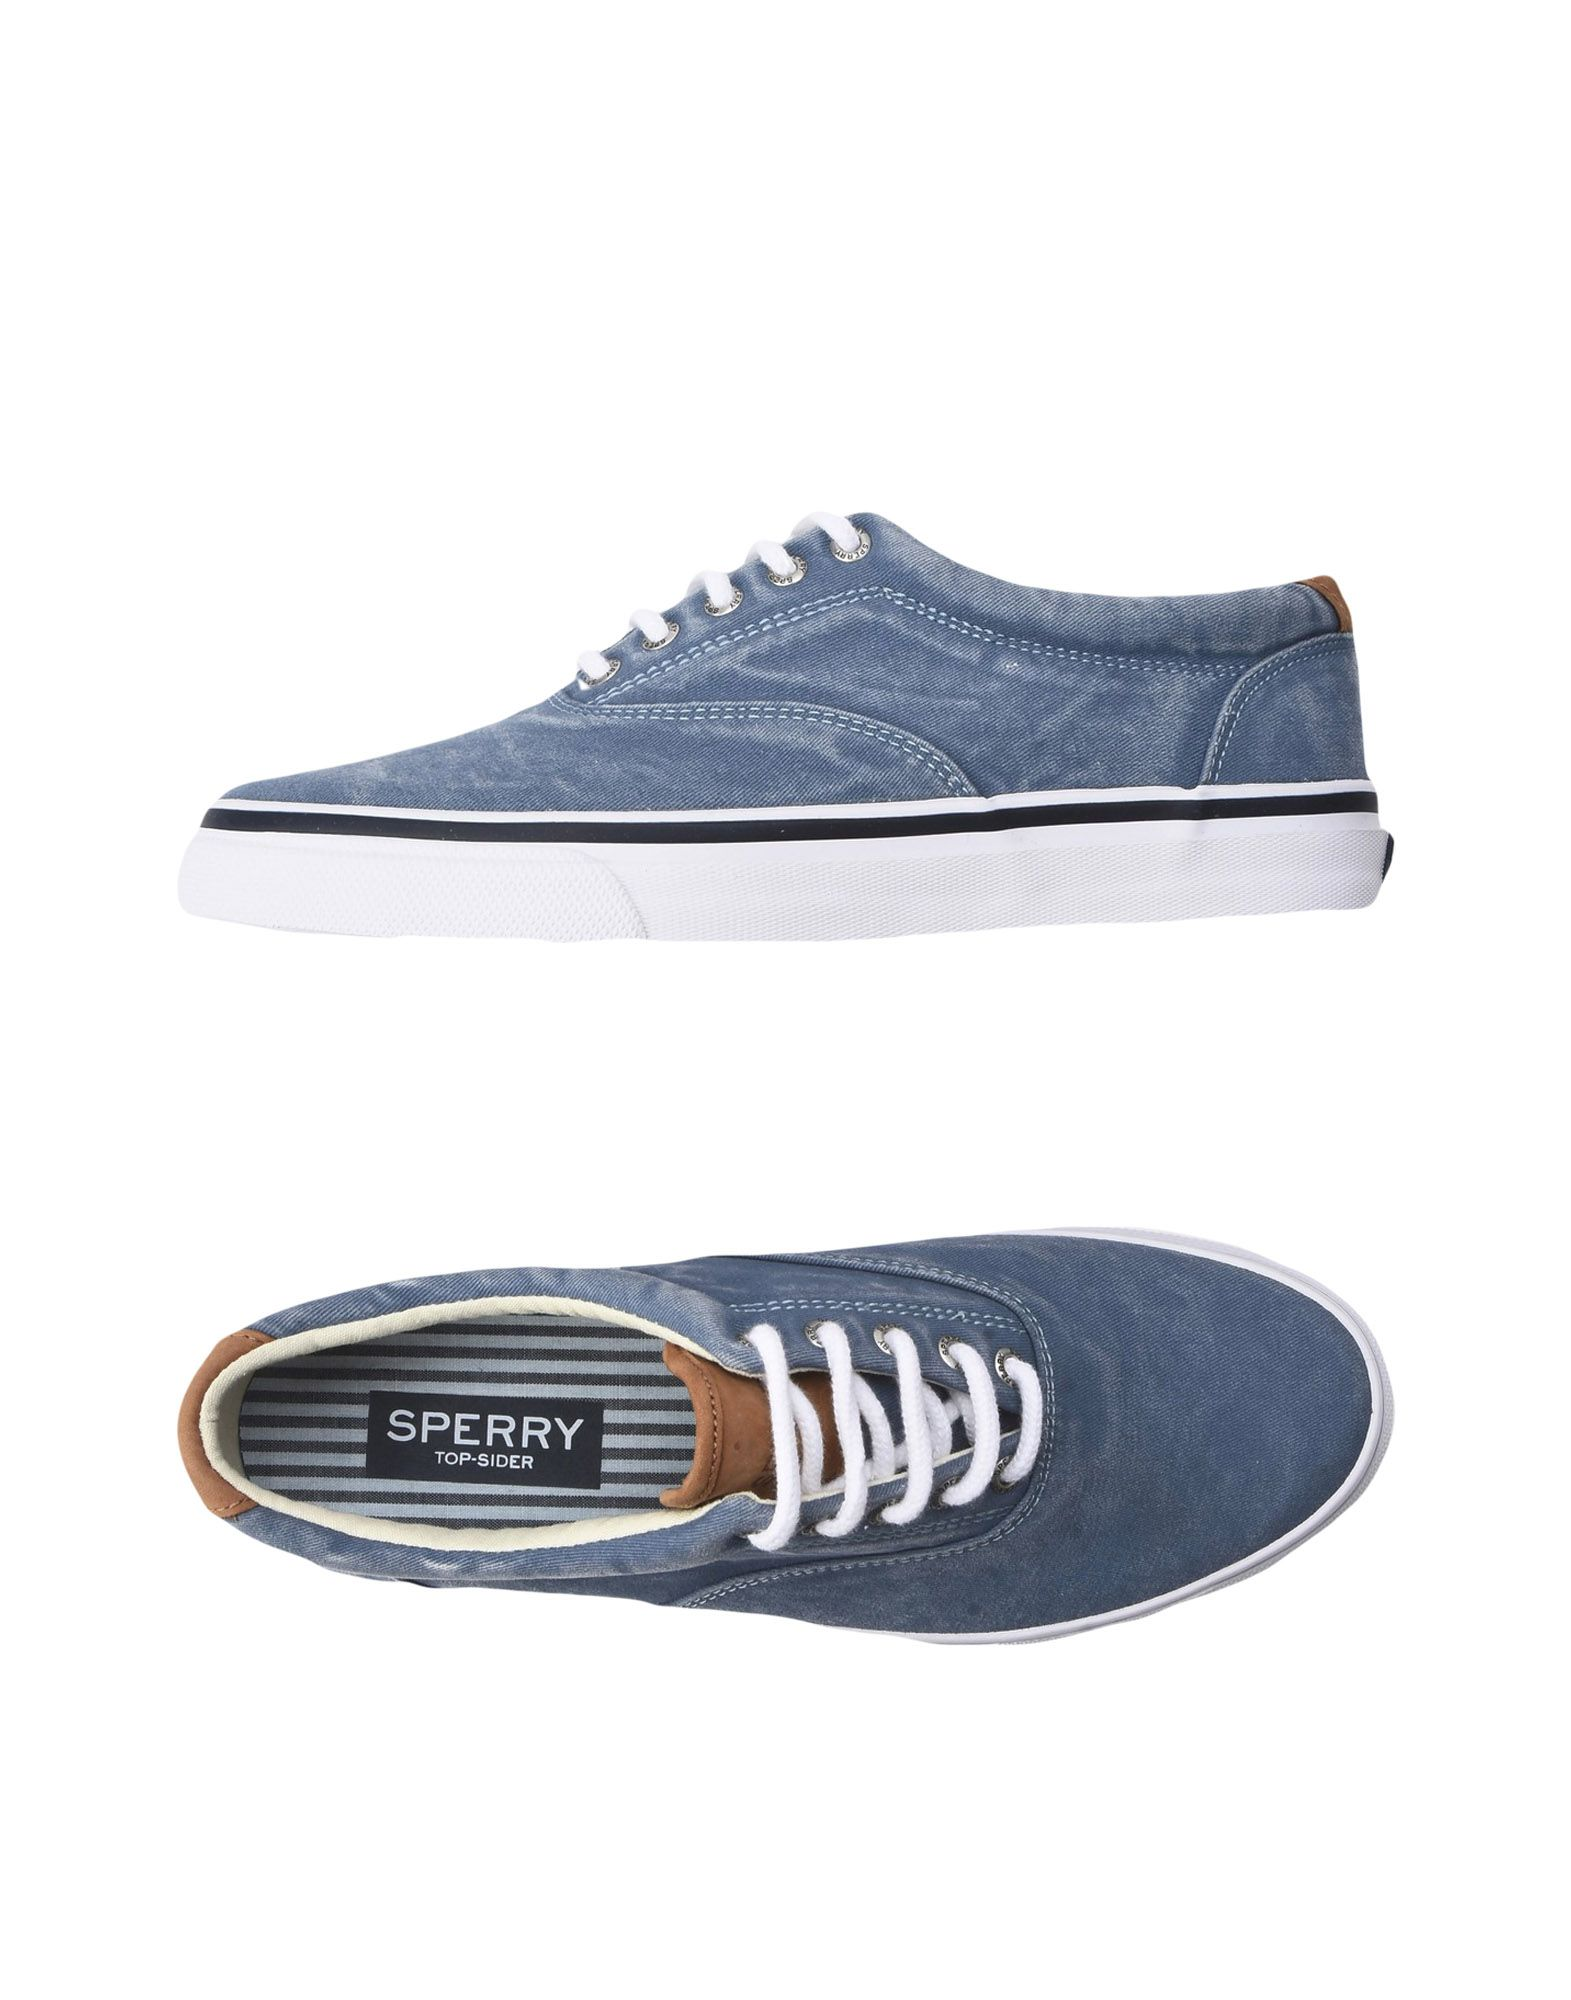 Sneakers Sperry Top-Sider Striper Ll Cvo - Uomo - 11221081KM